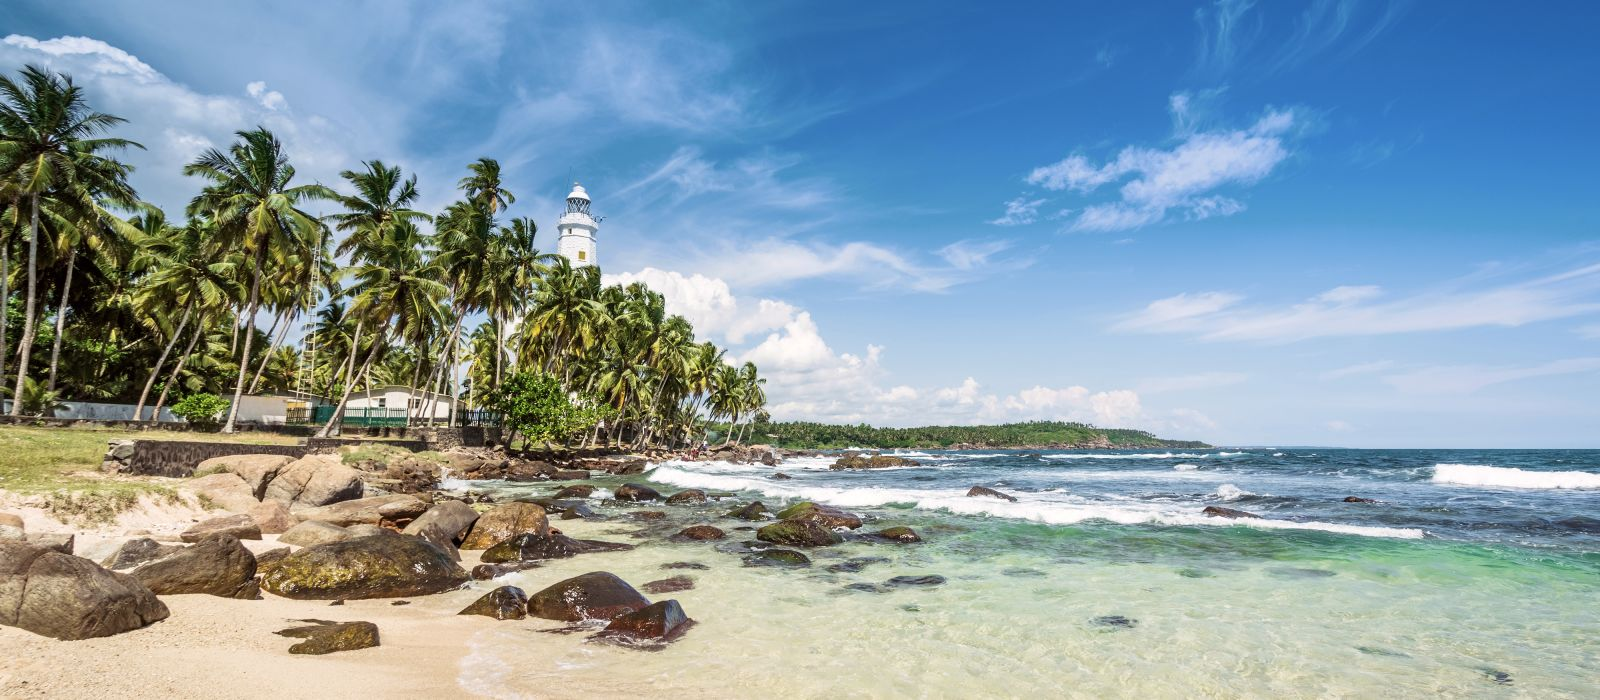 Sri Lanka's Heritage Cities and Unspoiled Landscapes Tour Trip 1